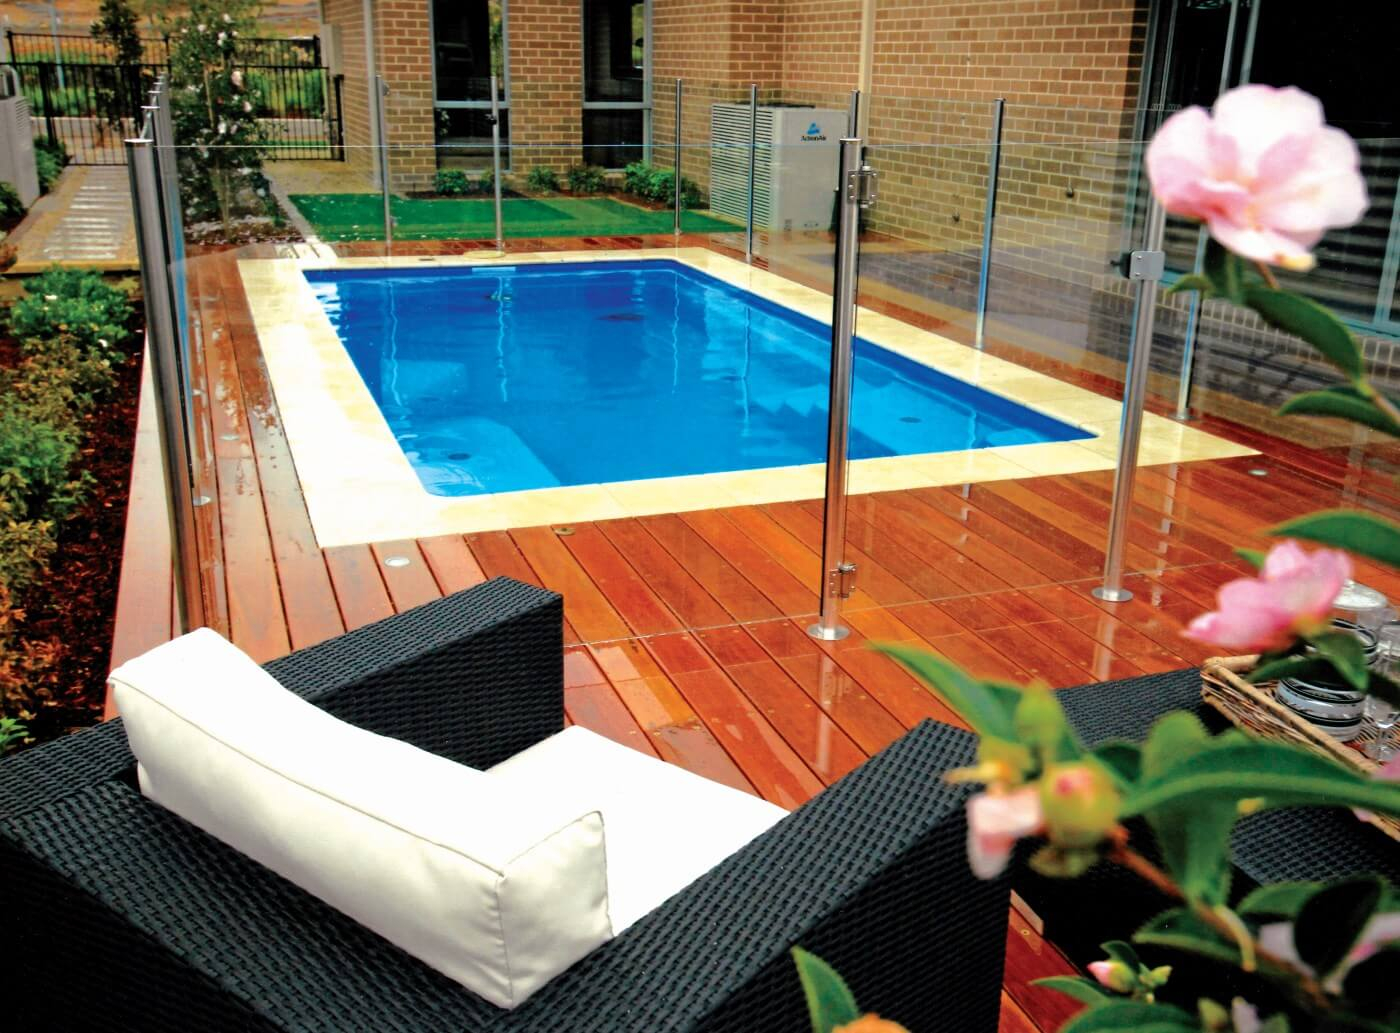 The Best Pool Design Ideas For Your Backyard Compass Pools Australia in 12 Awesome Concepts of How to Improve Backyard With Pool Design Ideas